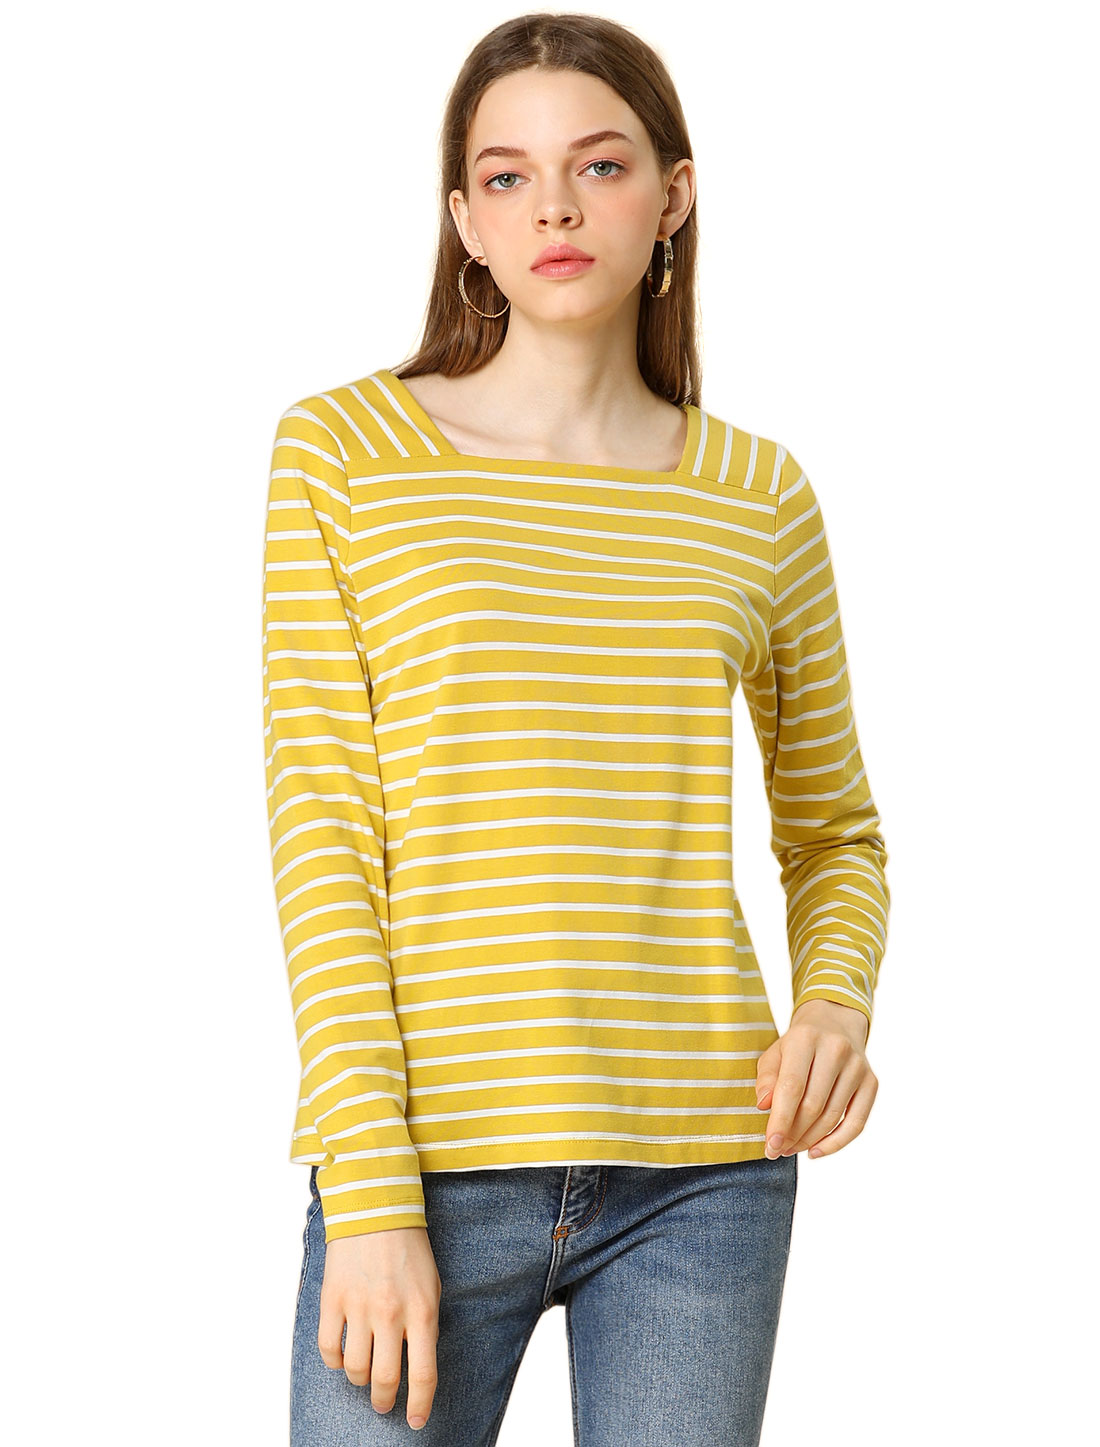 Allegra K Women's Long Sleeve Square Neck Striped T-Shirt Yellow S